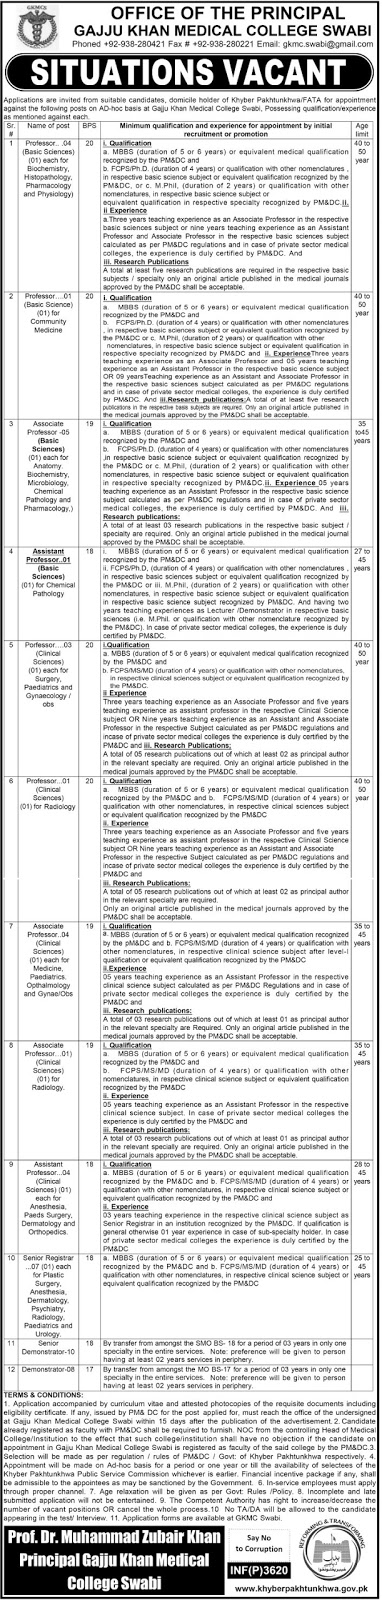 Medical Teaching and Faculty Jobs in Gajju Khan Medical College Swabi Jobs 2016